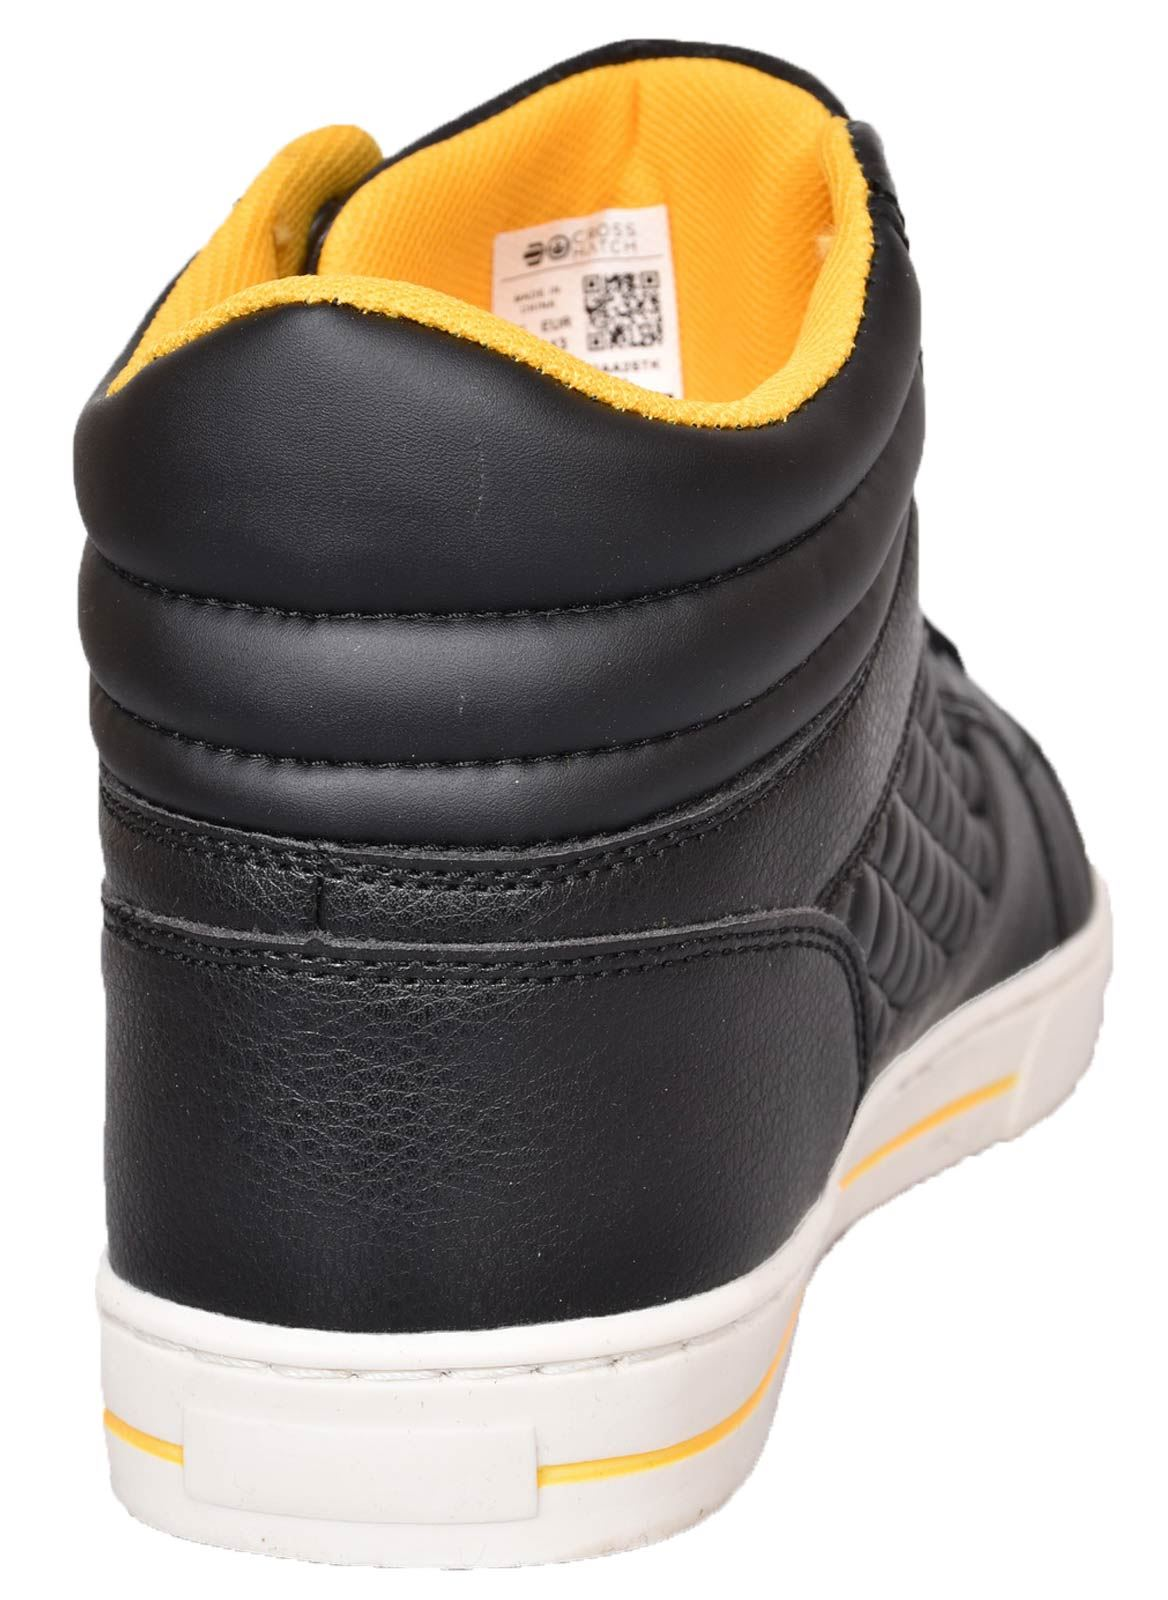 Mens-Trainers-Lace-up-Crosshatch-High-Tops-Ankle-Padded-Shoes-New-UK-Sizes-7-12 thumbnail 6